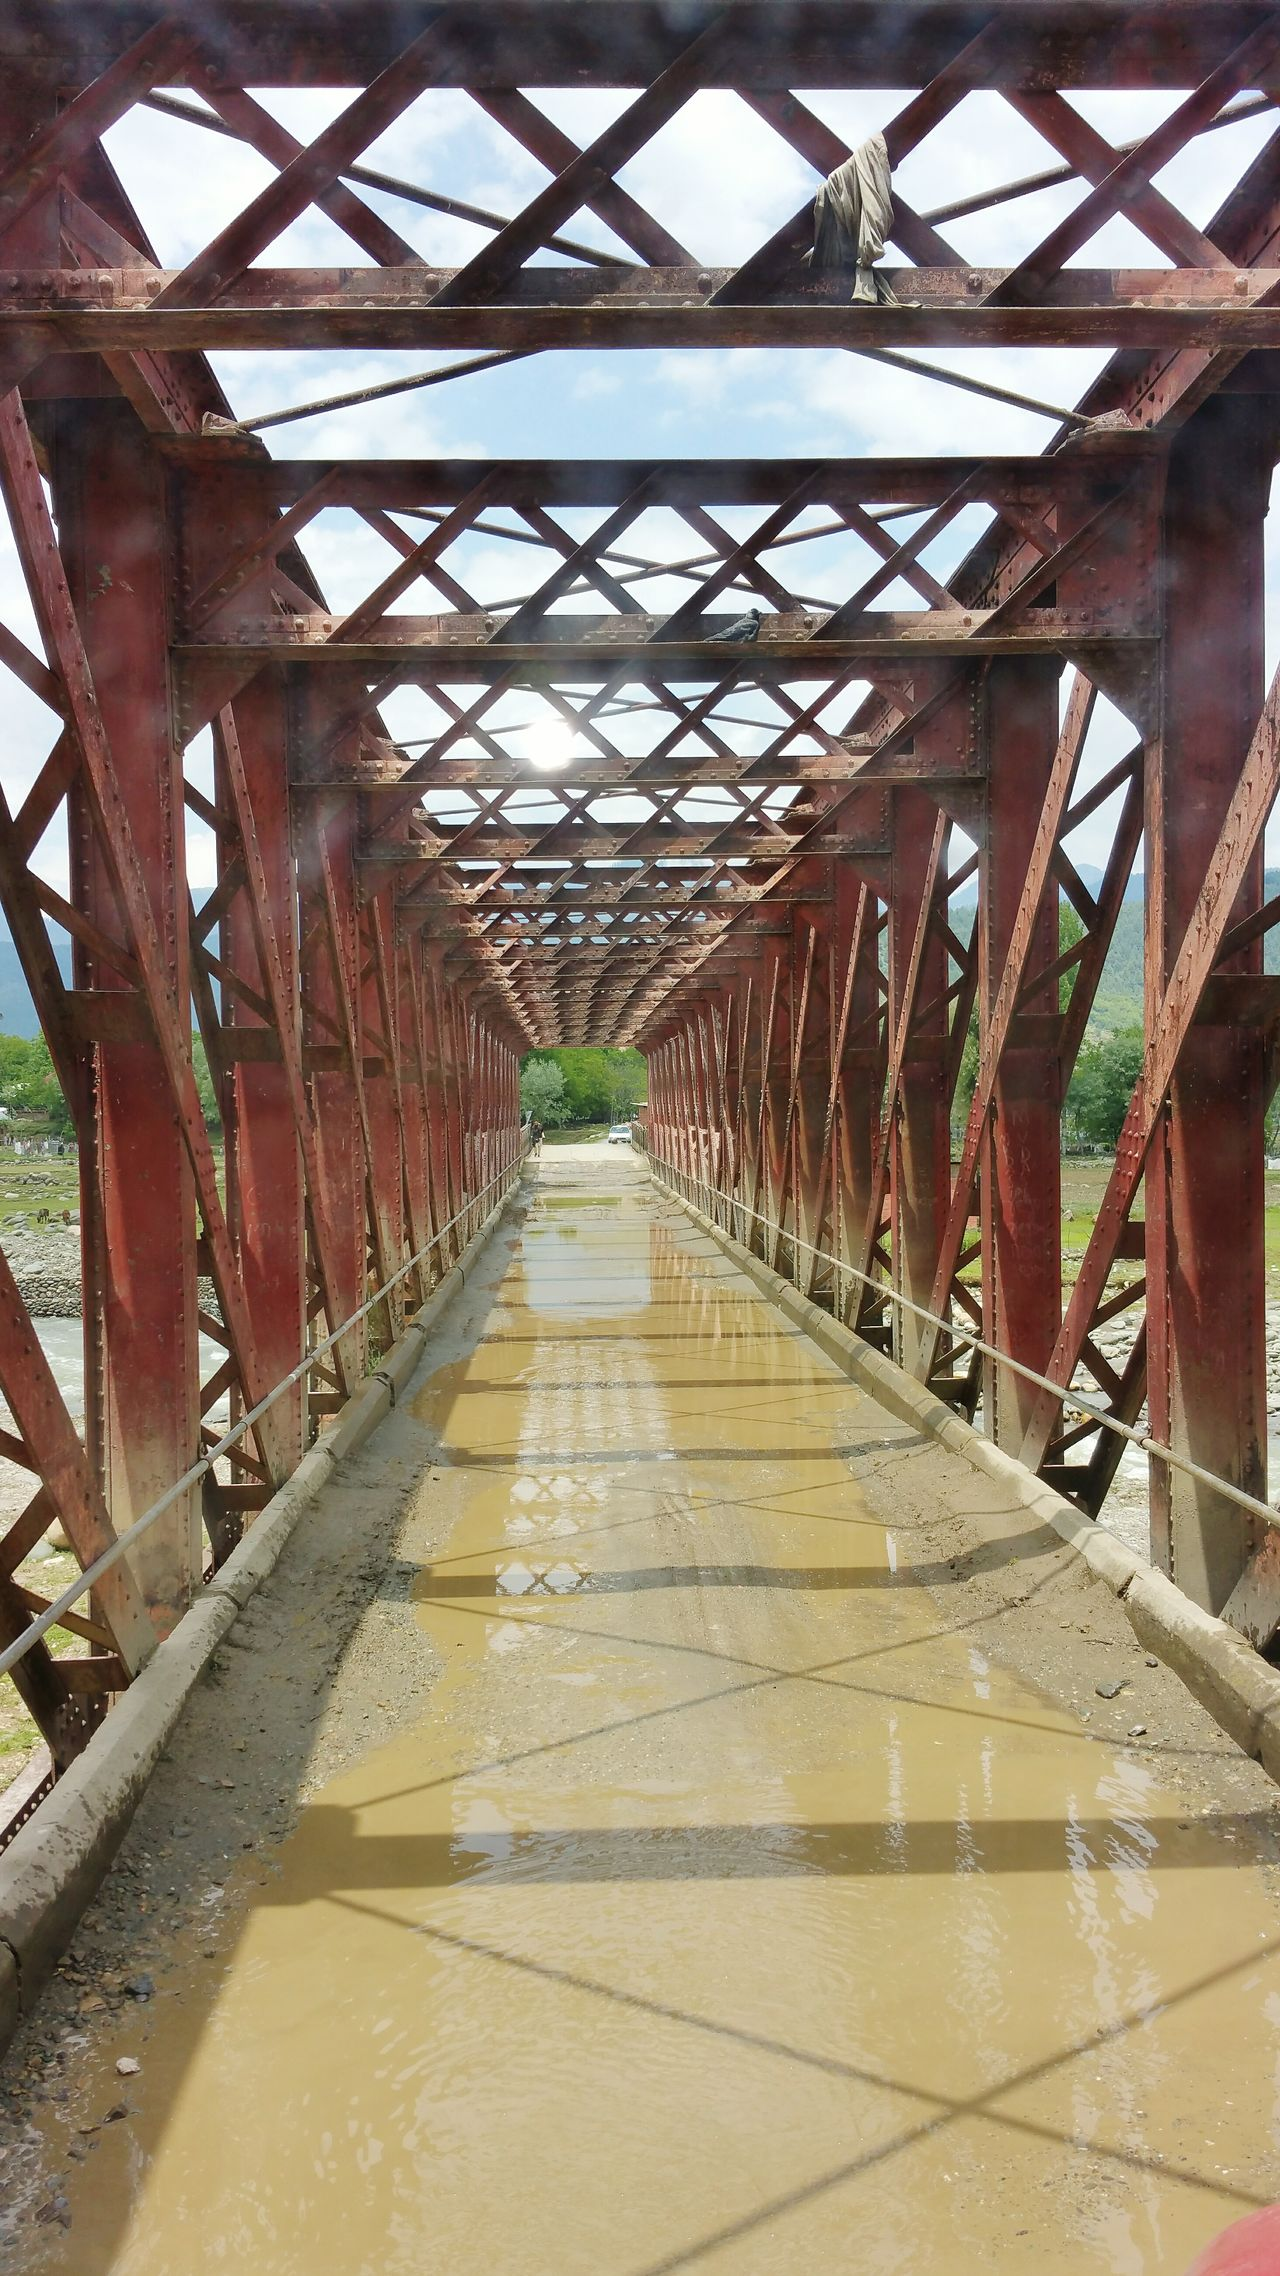 Kashmir Roadway Bridge Iron Bridge Tunnel Handwara Kupwara Tarathpora Kashmir Roads Road